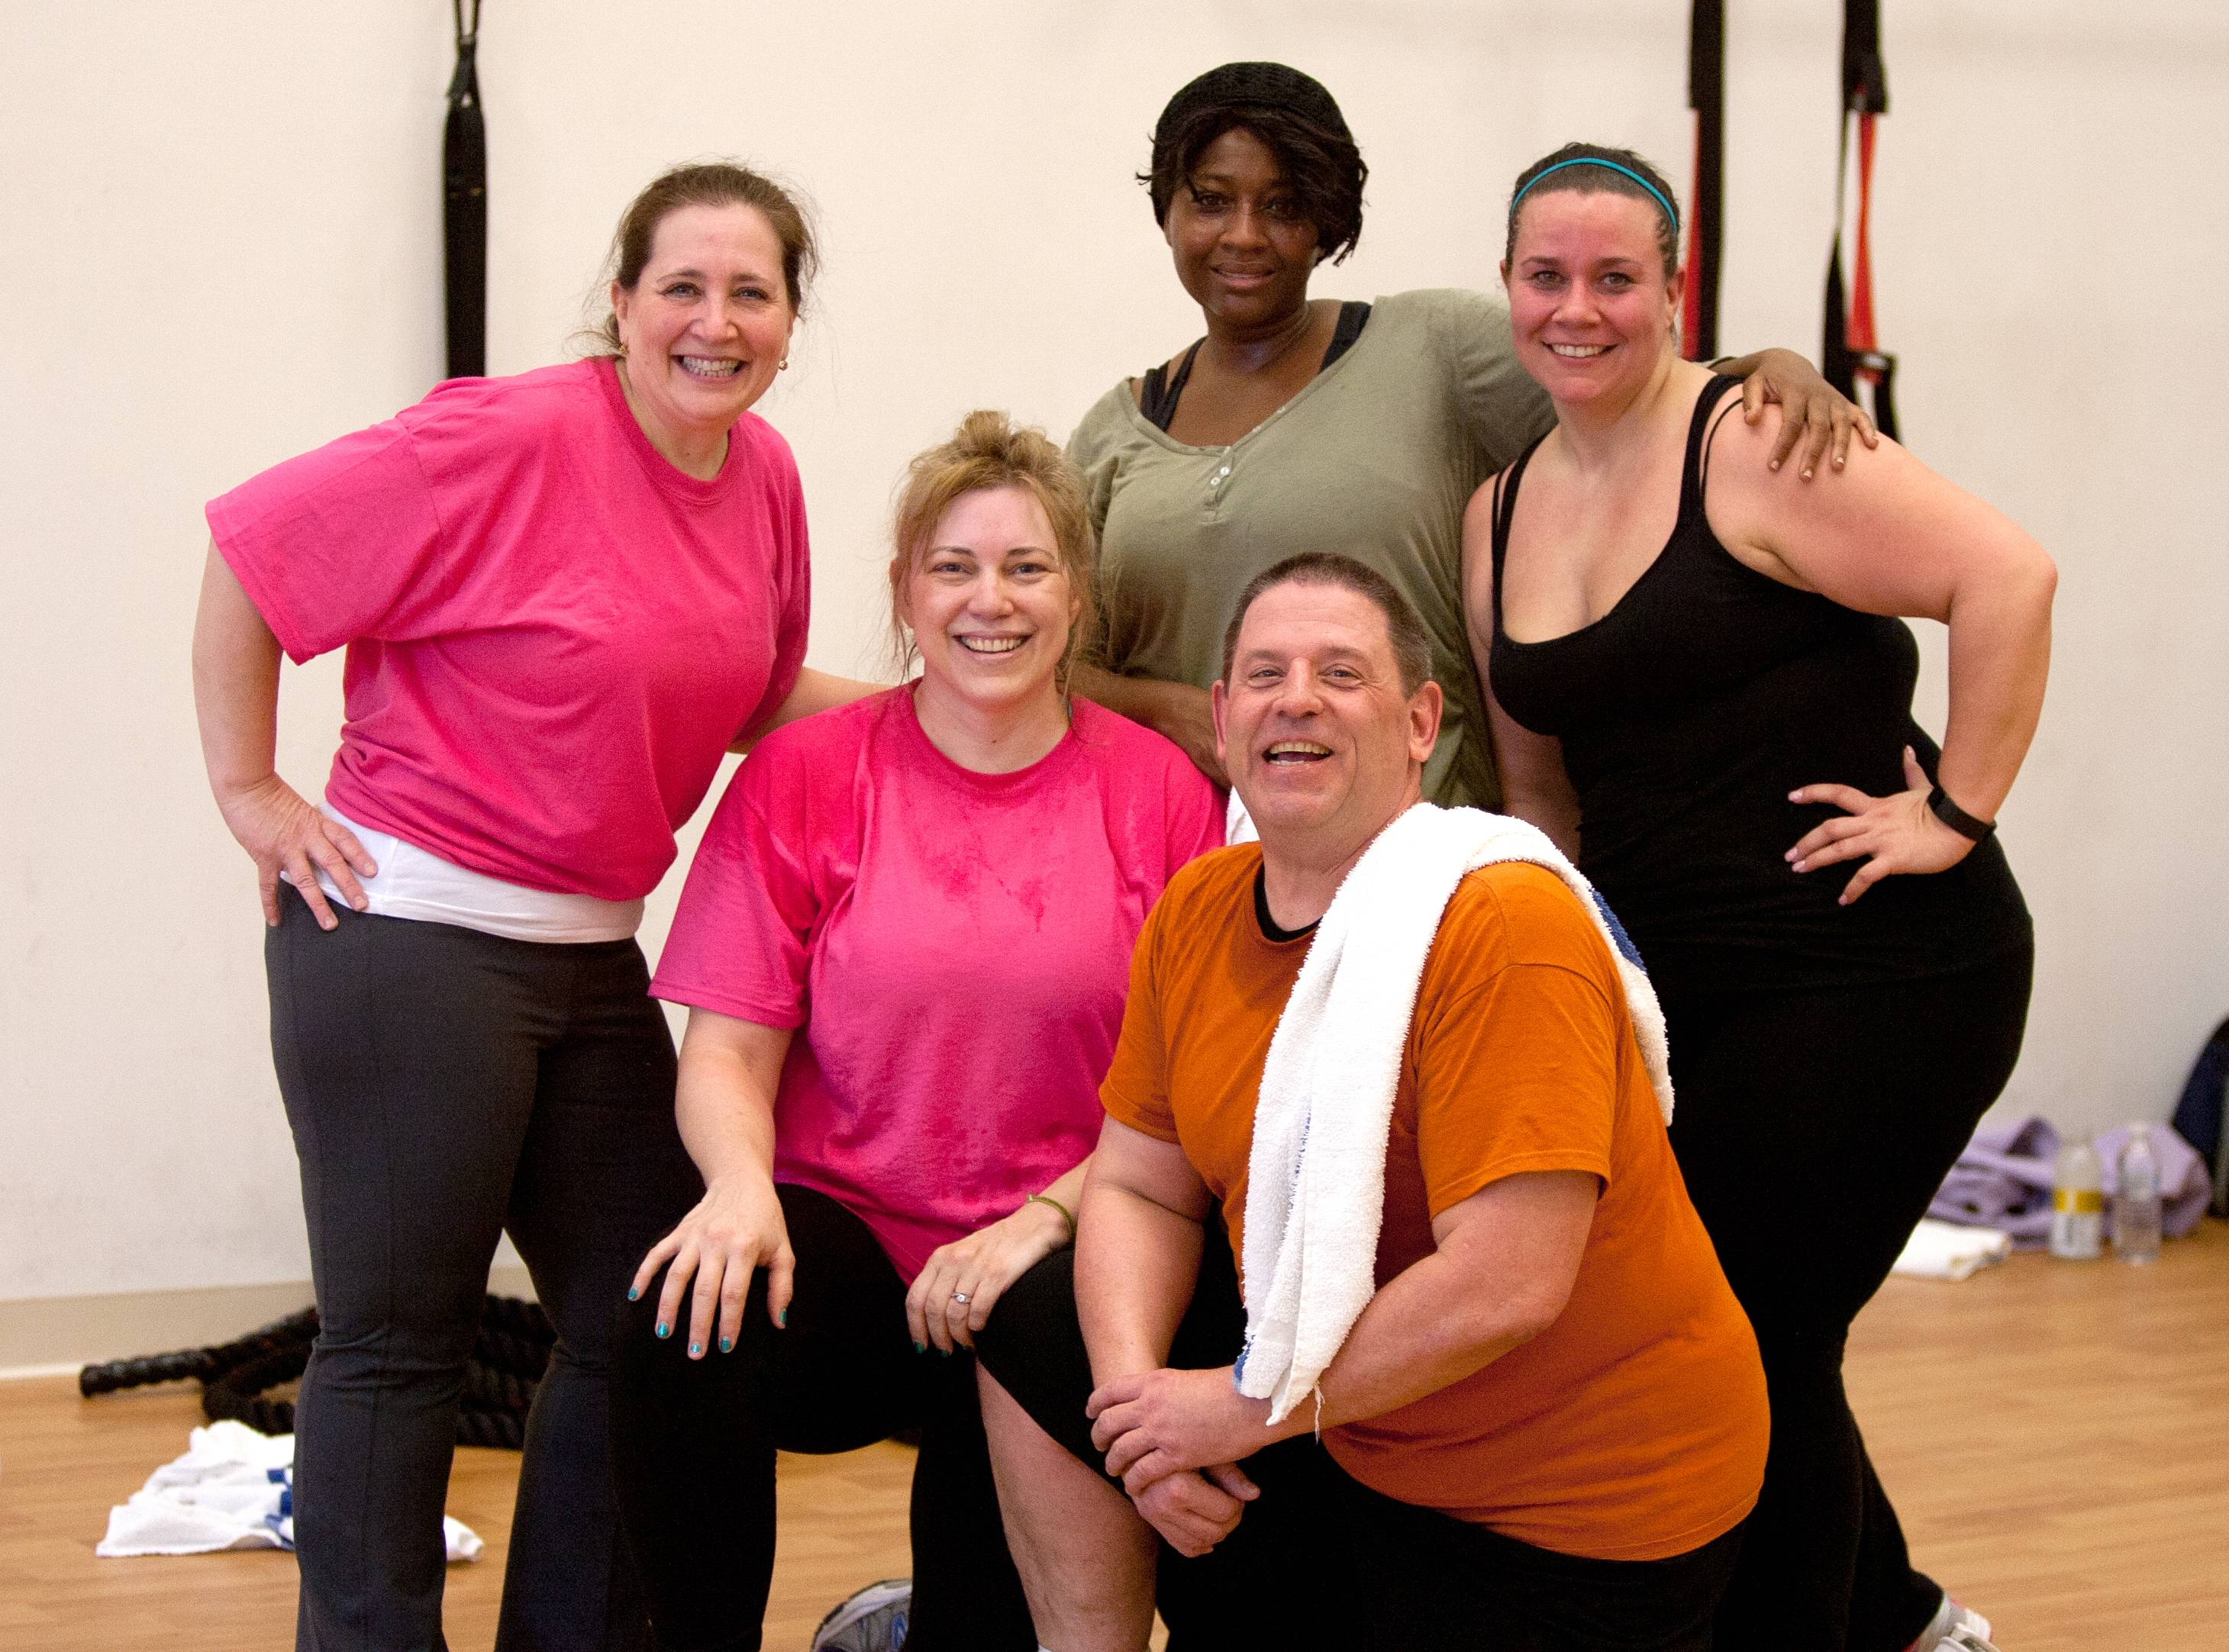 The Mount Prospect Park District community challenge team, Christina Greco, Marni Finder, Tressa Thomas, Stephanie Melka and Scott Sinclair spent Saturday morning working out at the Biggest Loser Resort at Eaglewood in Itasca.